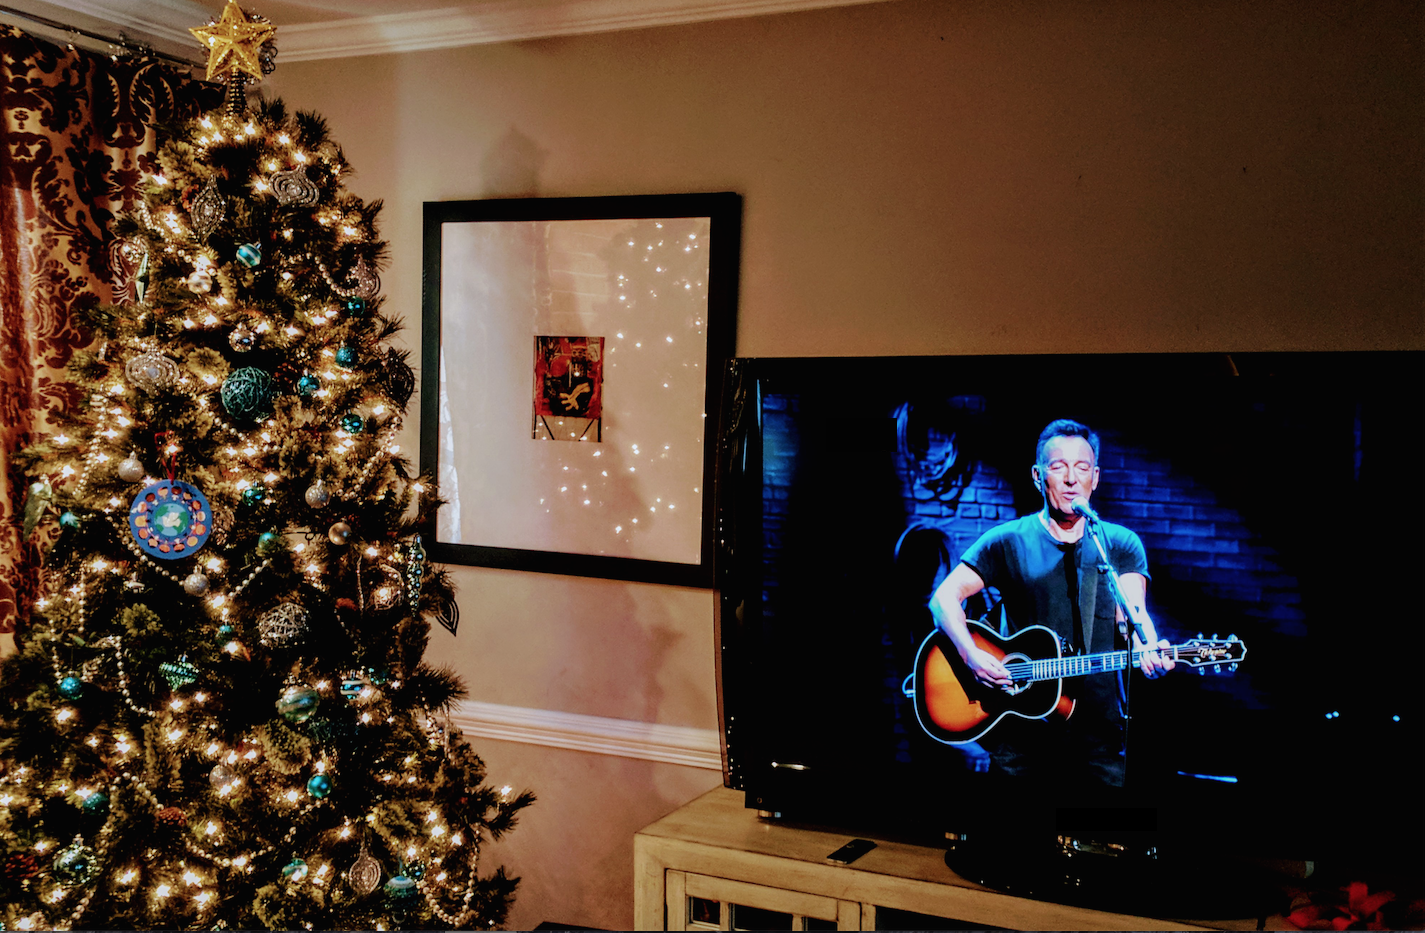 Bruce Springsteen Christmas.Springsteen On Broadway Is Bruce S Christmas Gift To America